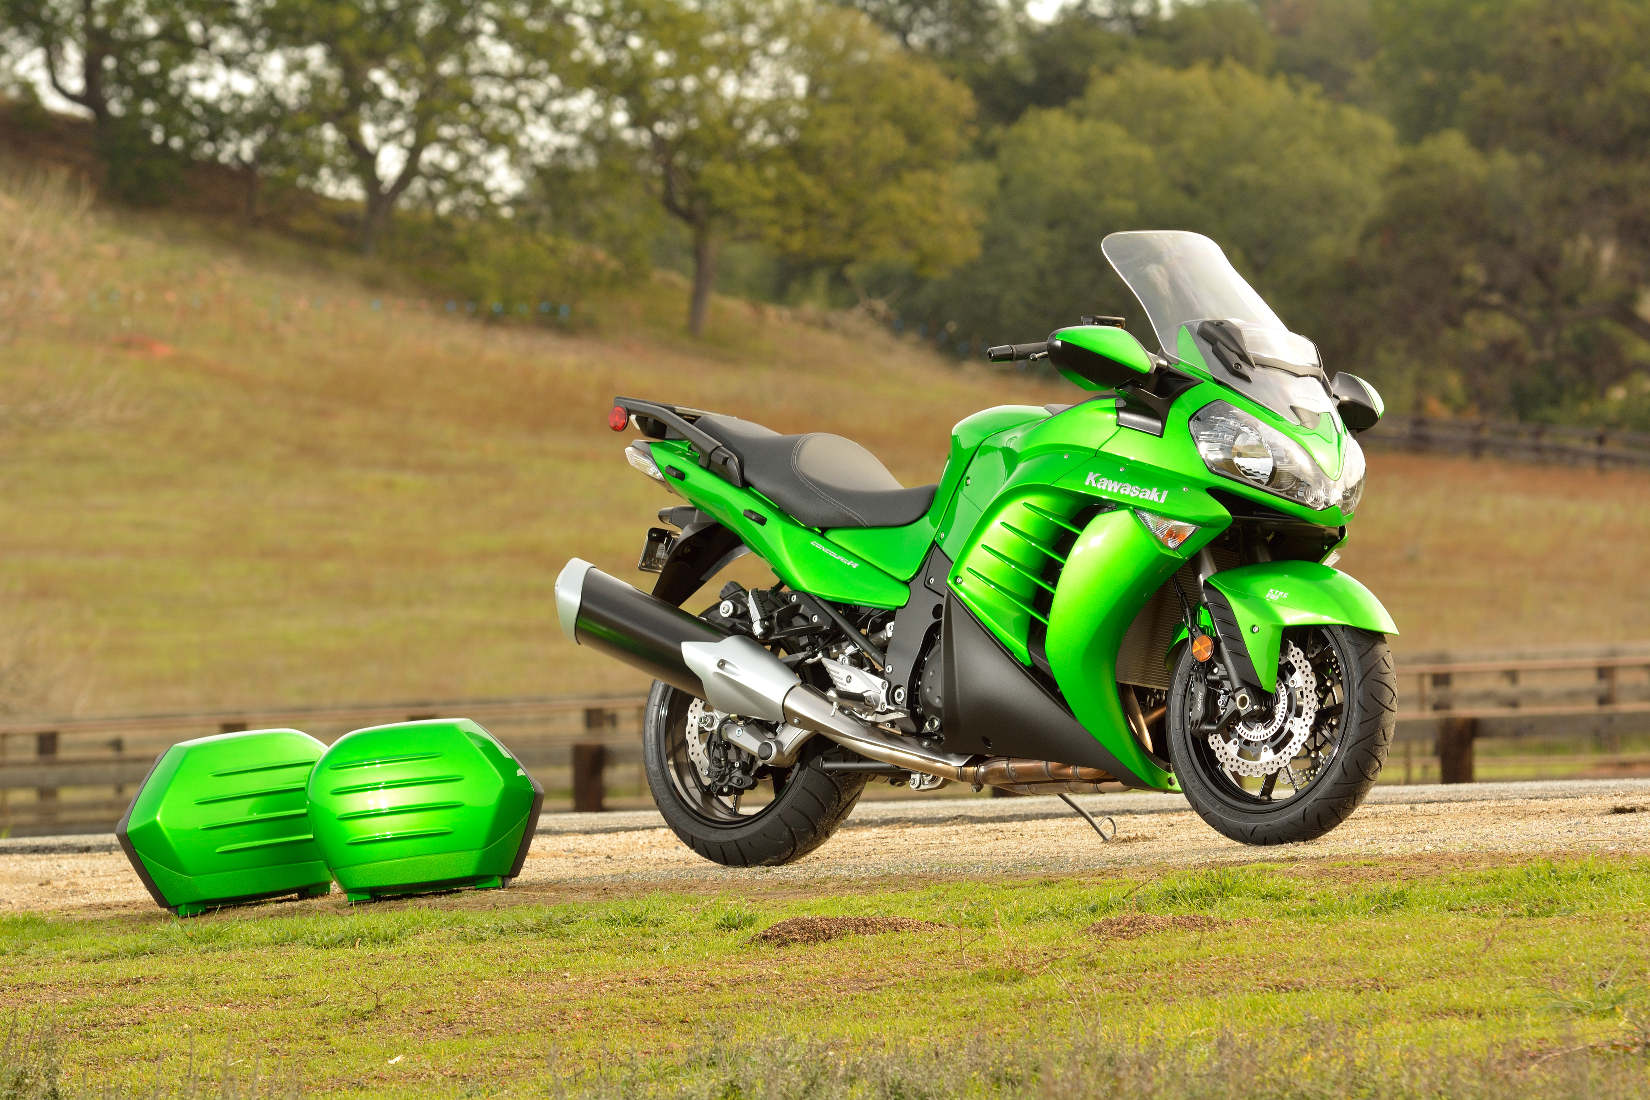 2015 Kawasaki Concours 14 Abs Md Ride Review Part One